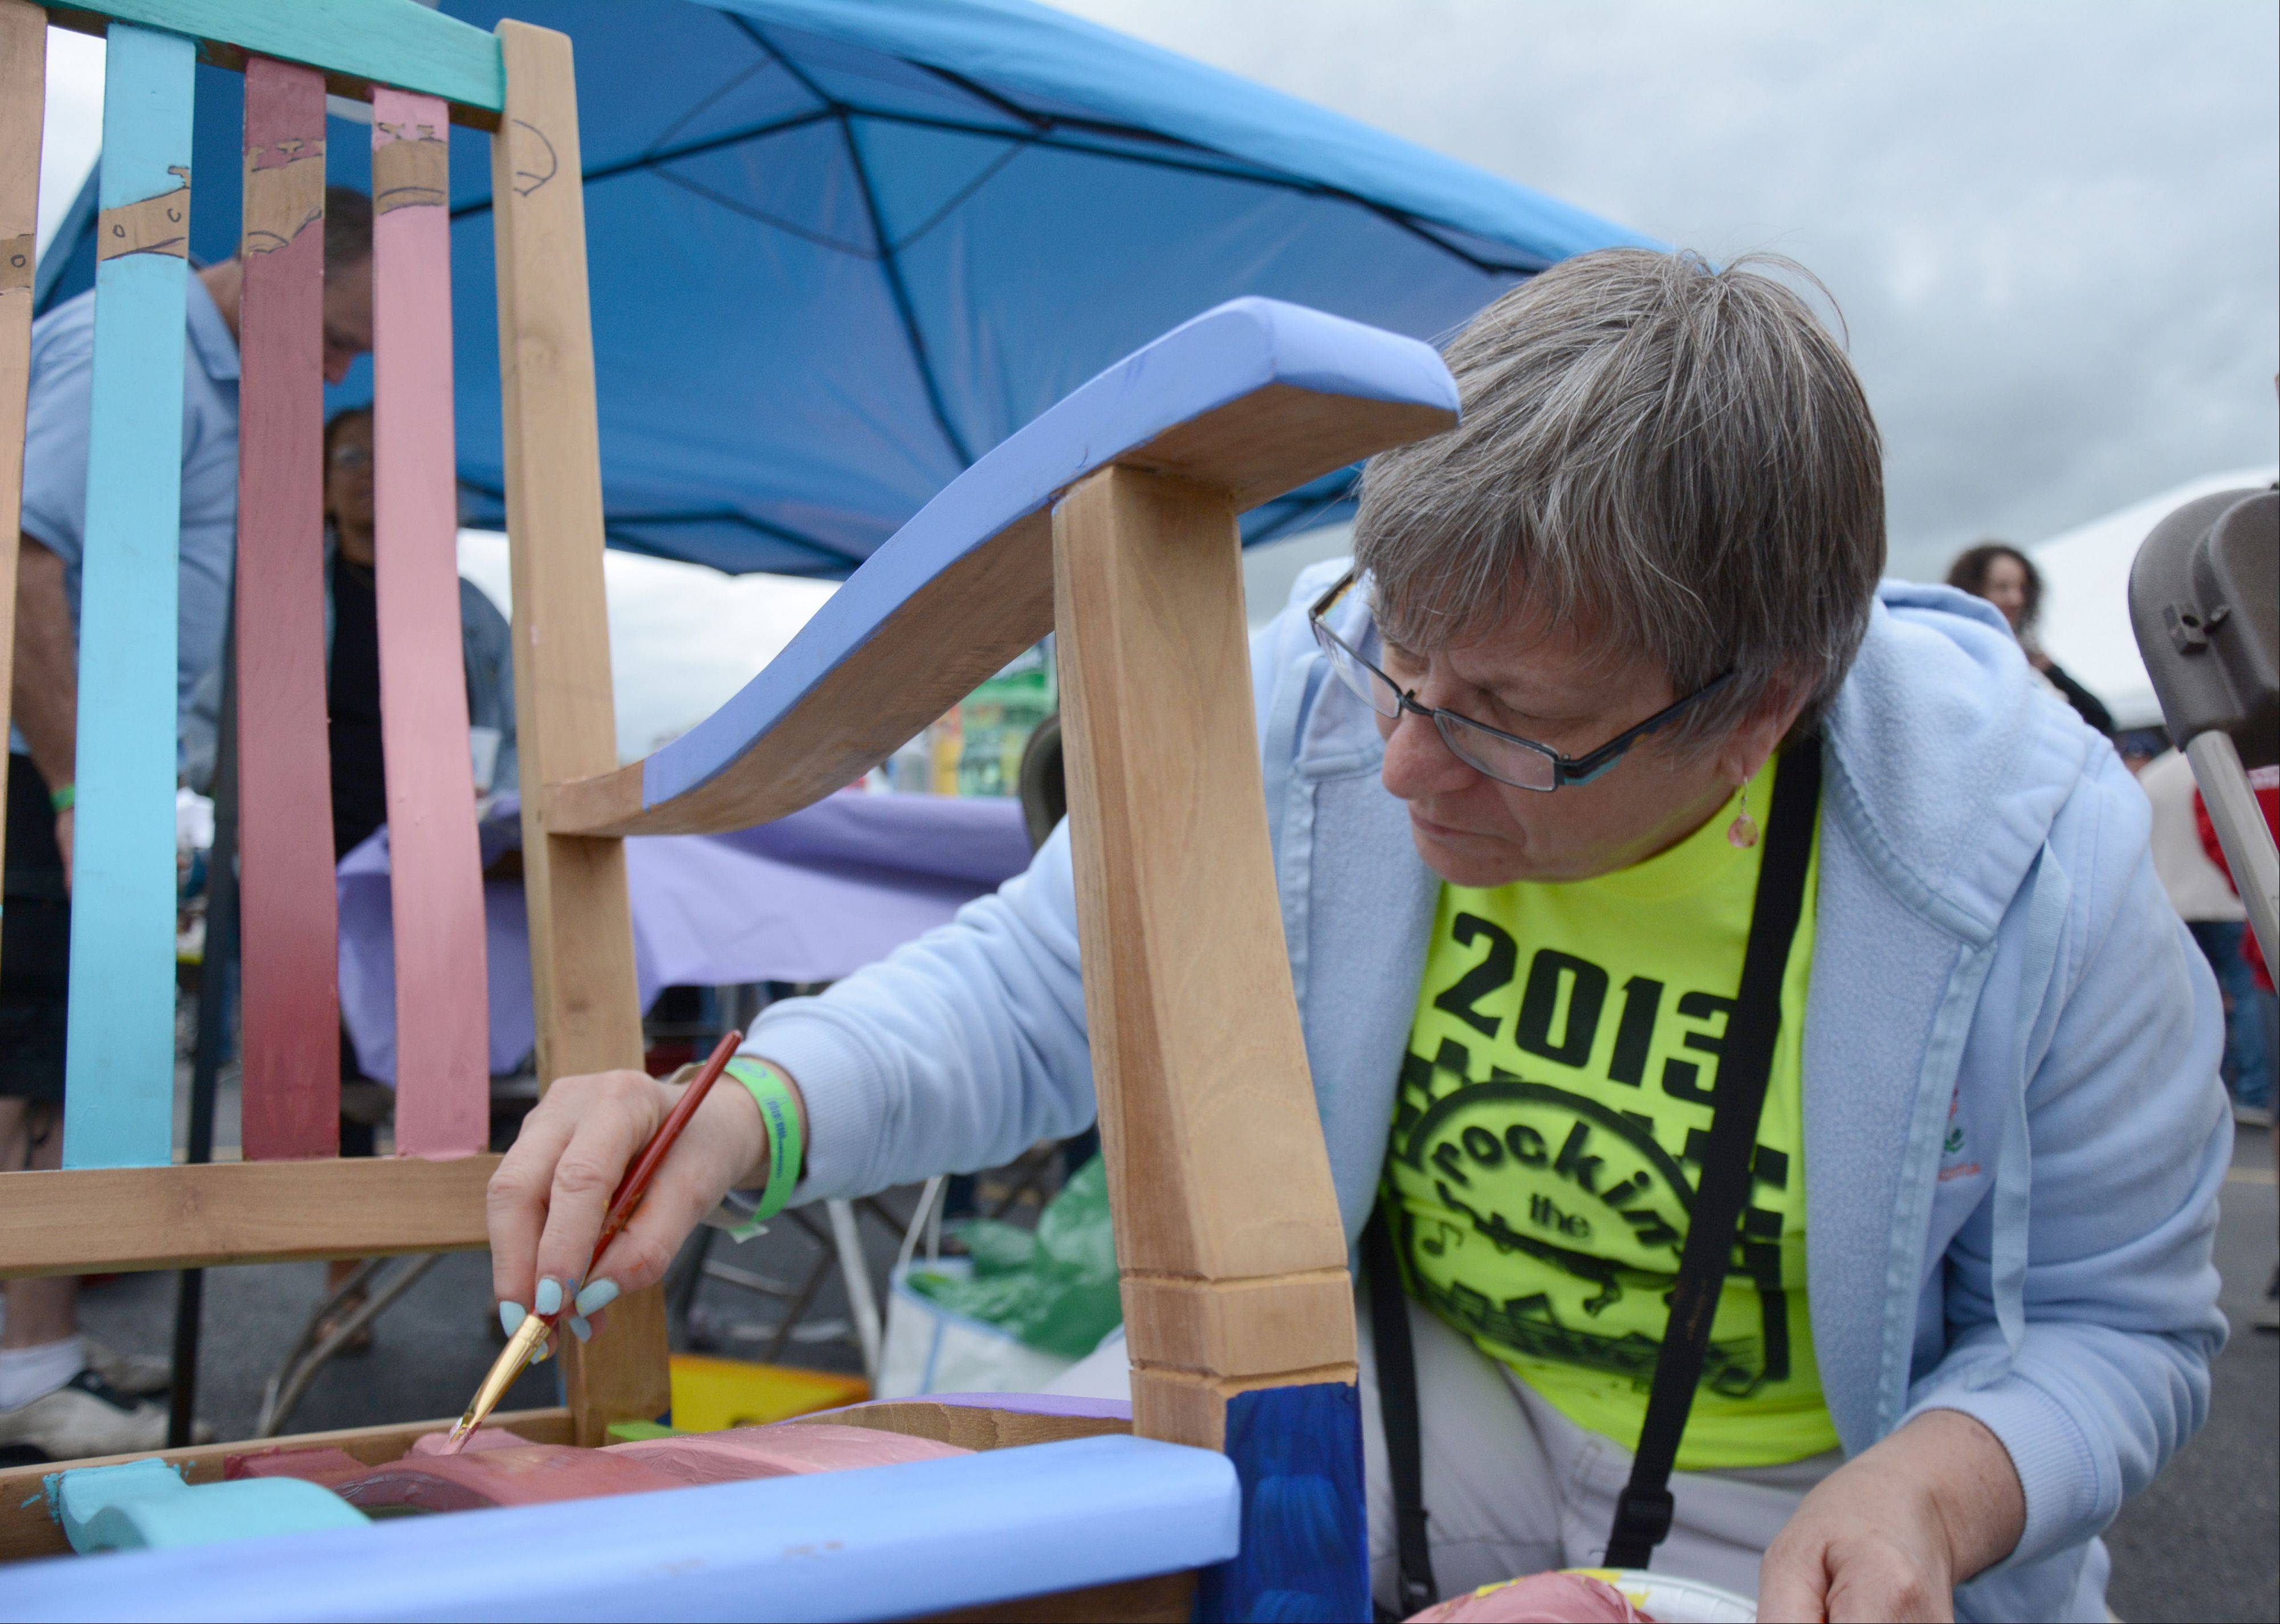 Kathy McLin, of Palatine, paints a rocking chair at the Rockin' the Blocks community block party in Palatine Saturday, July 27. The rocking chair will be donated to the Palatine Chamber of Commerce to be raffled off during the organizations movie night on August 18.